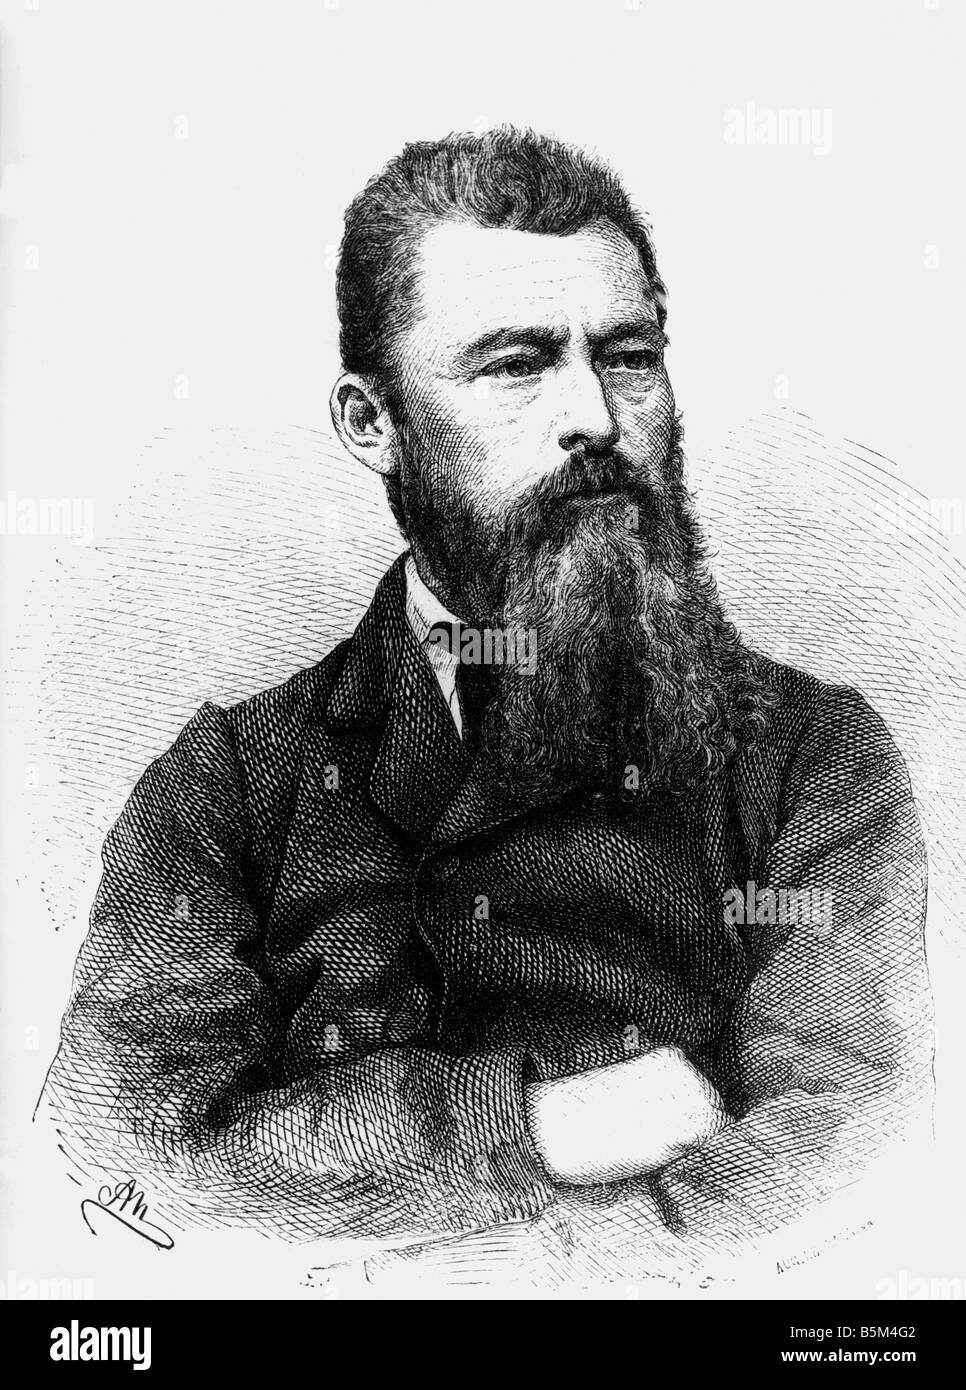 Feuerbach, Ludwig, 28.7.1804 - 13.9.1872, German philosopher, wood engraving, 1872, Additional-Rights-Clearances - Stock Image